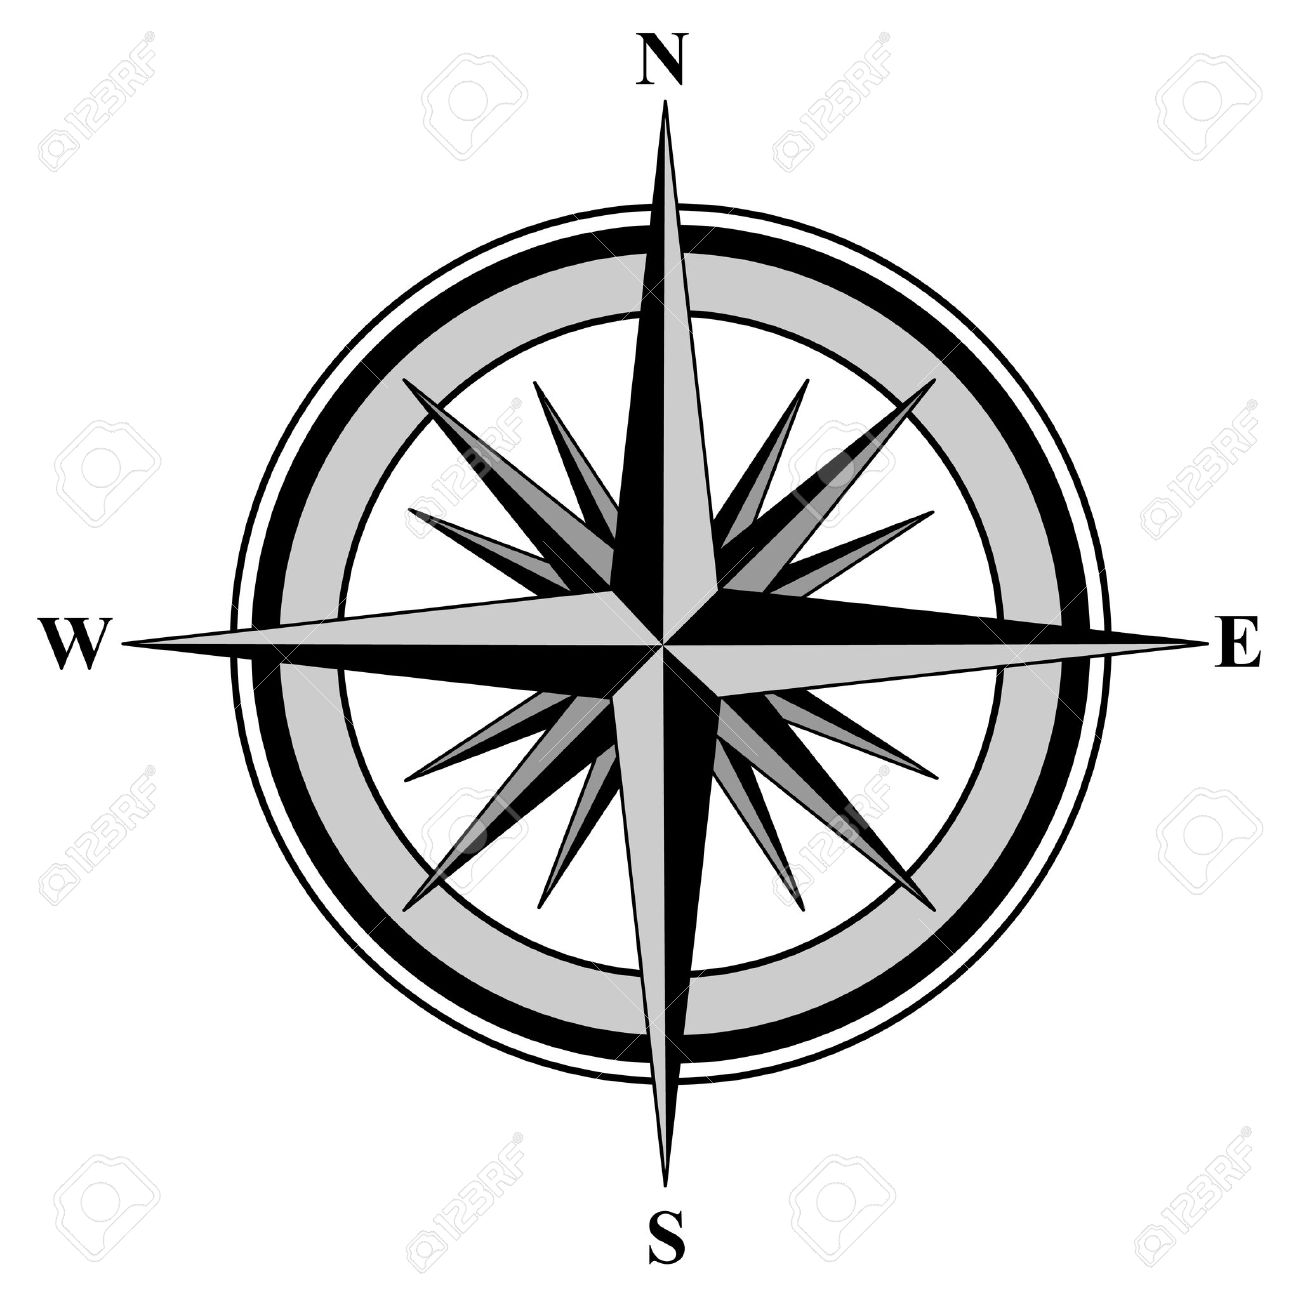 Illustration Of A Compass With All Directions North East South.